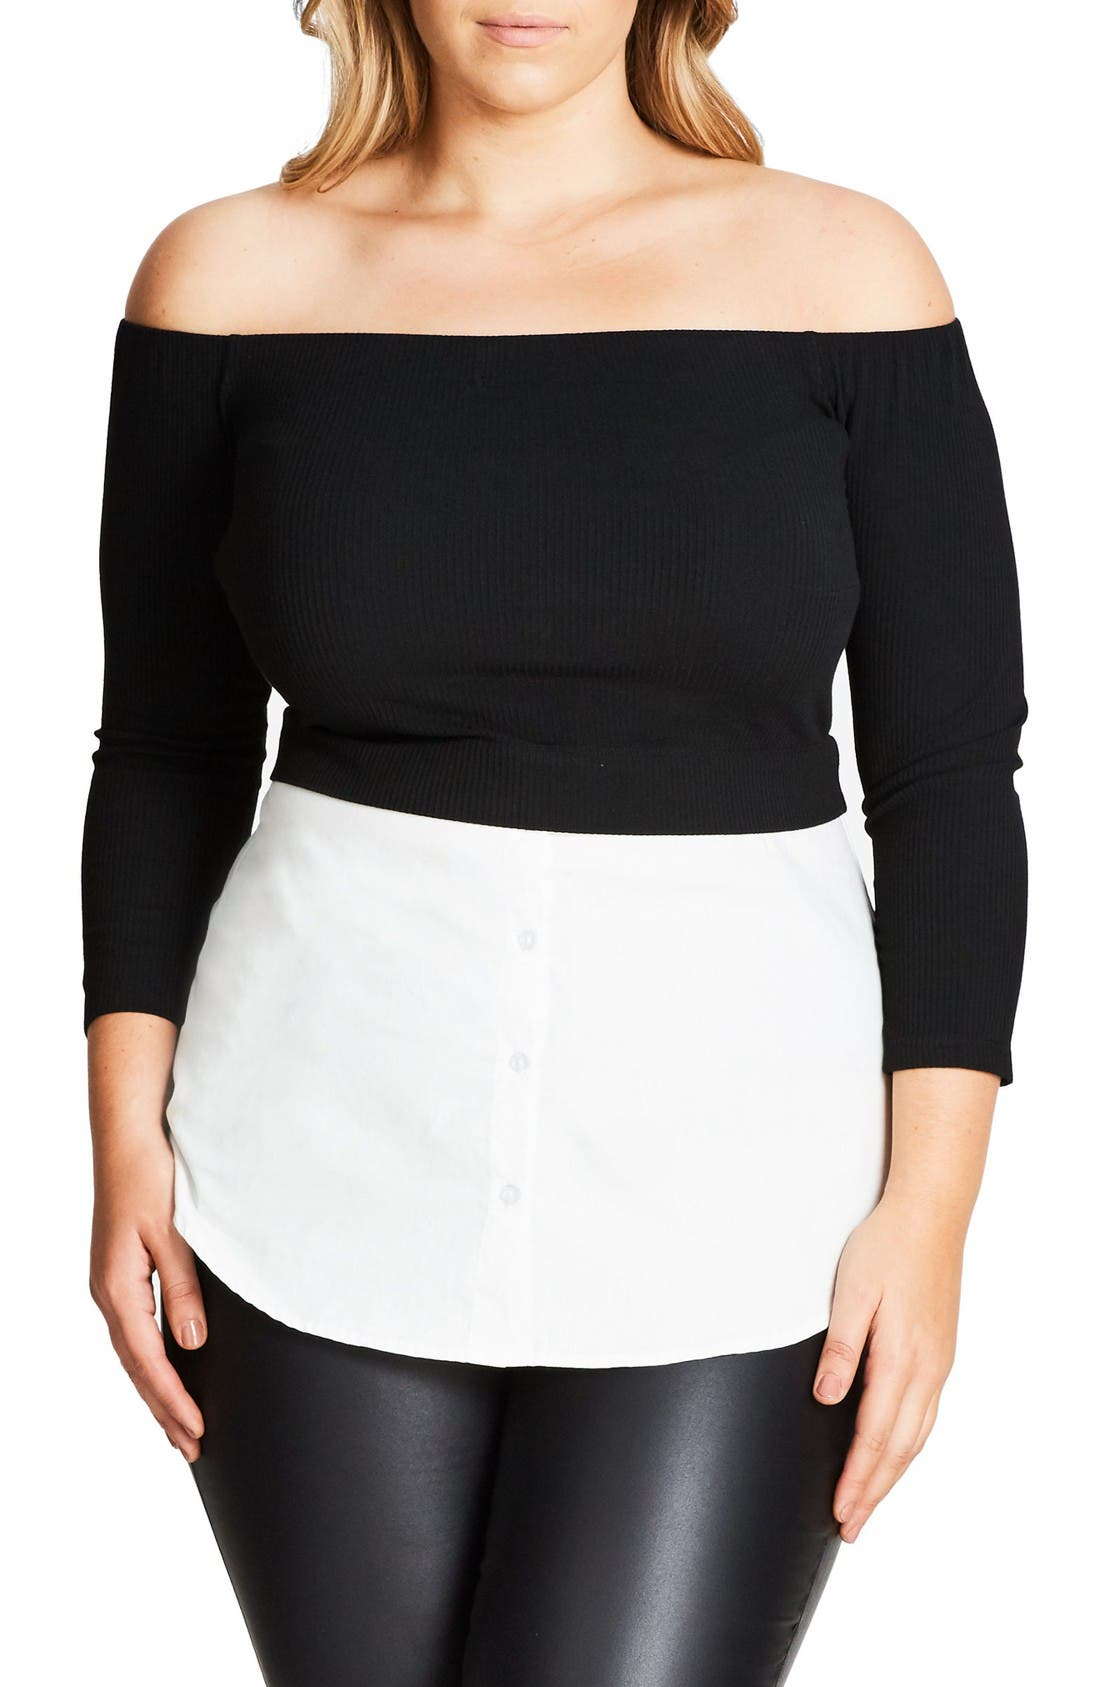 Alternate Image 1 Selected - City Chic Layer Look Off the Shoulder Top (Plus Size)